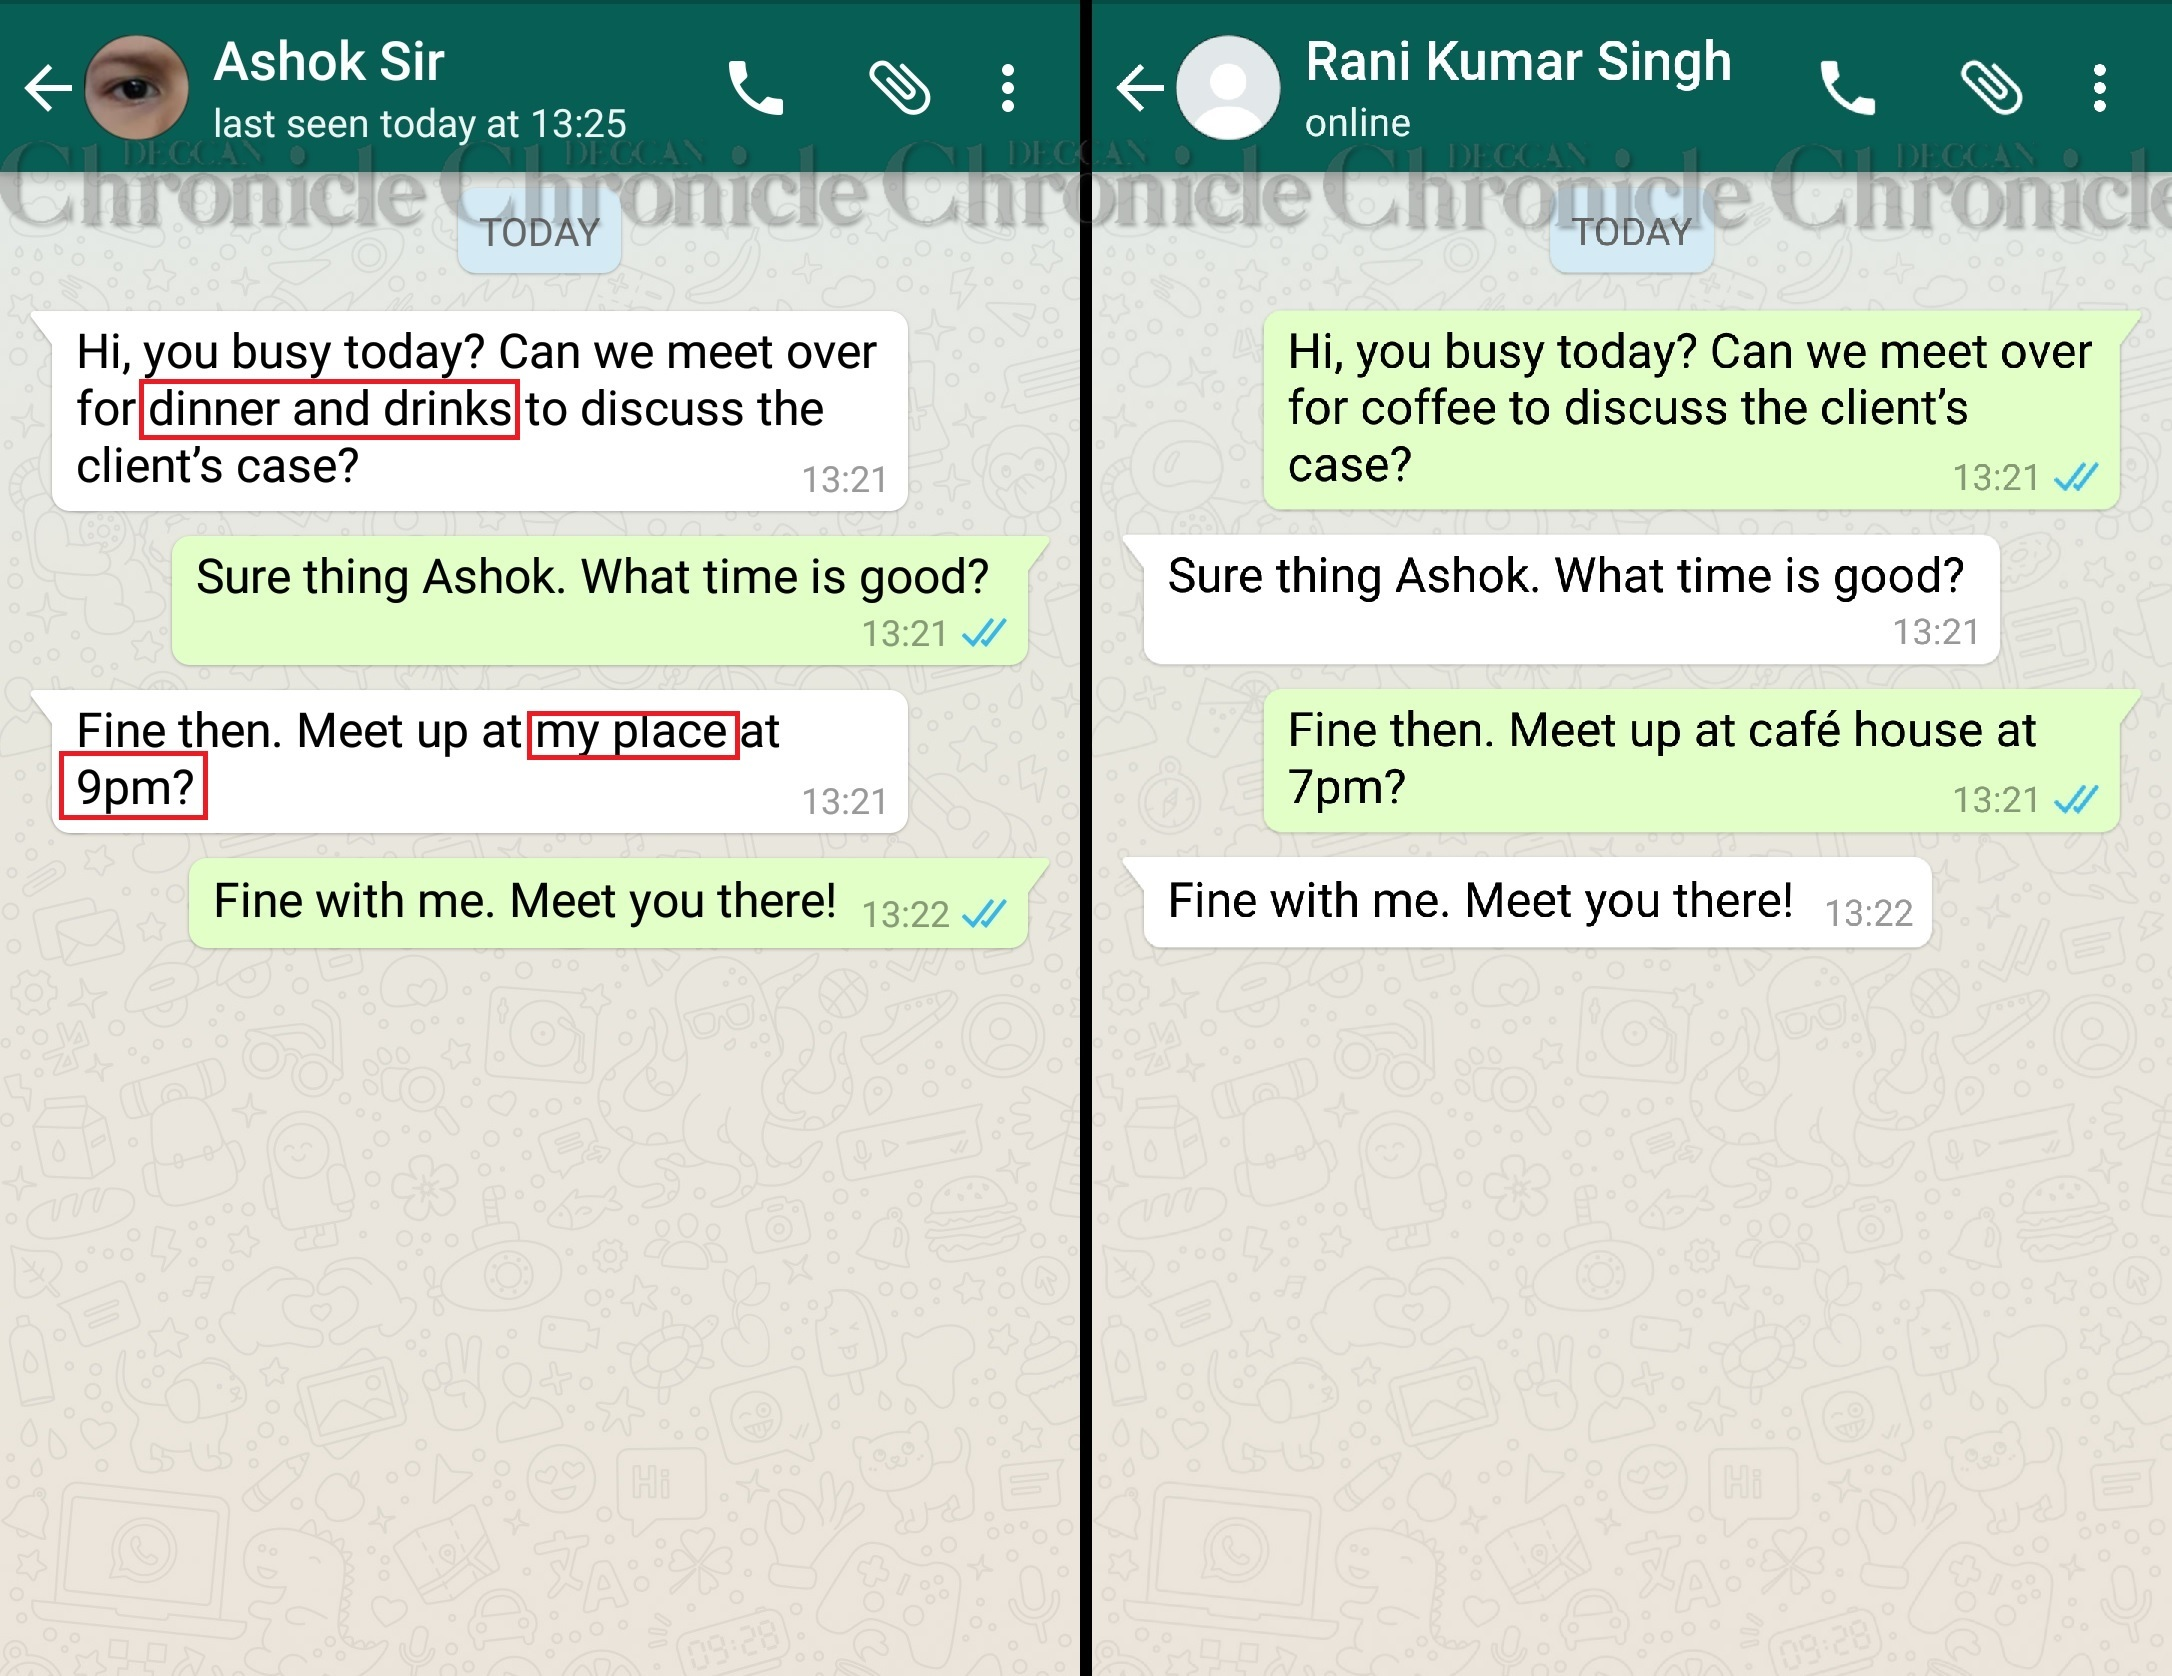 Shocking! WhatsApp is not secure, it could land you in big trouble